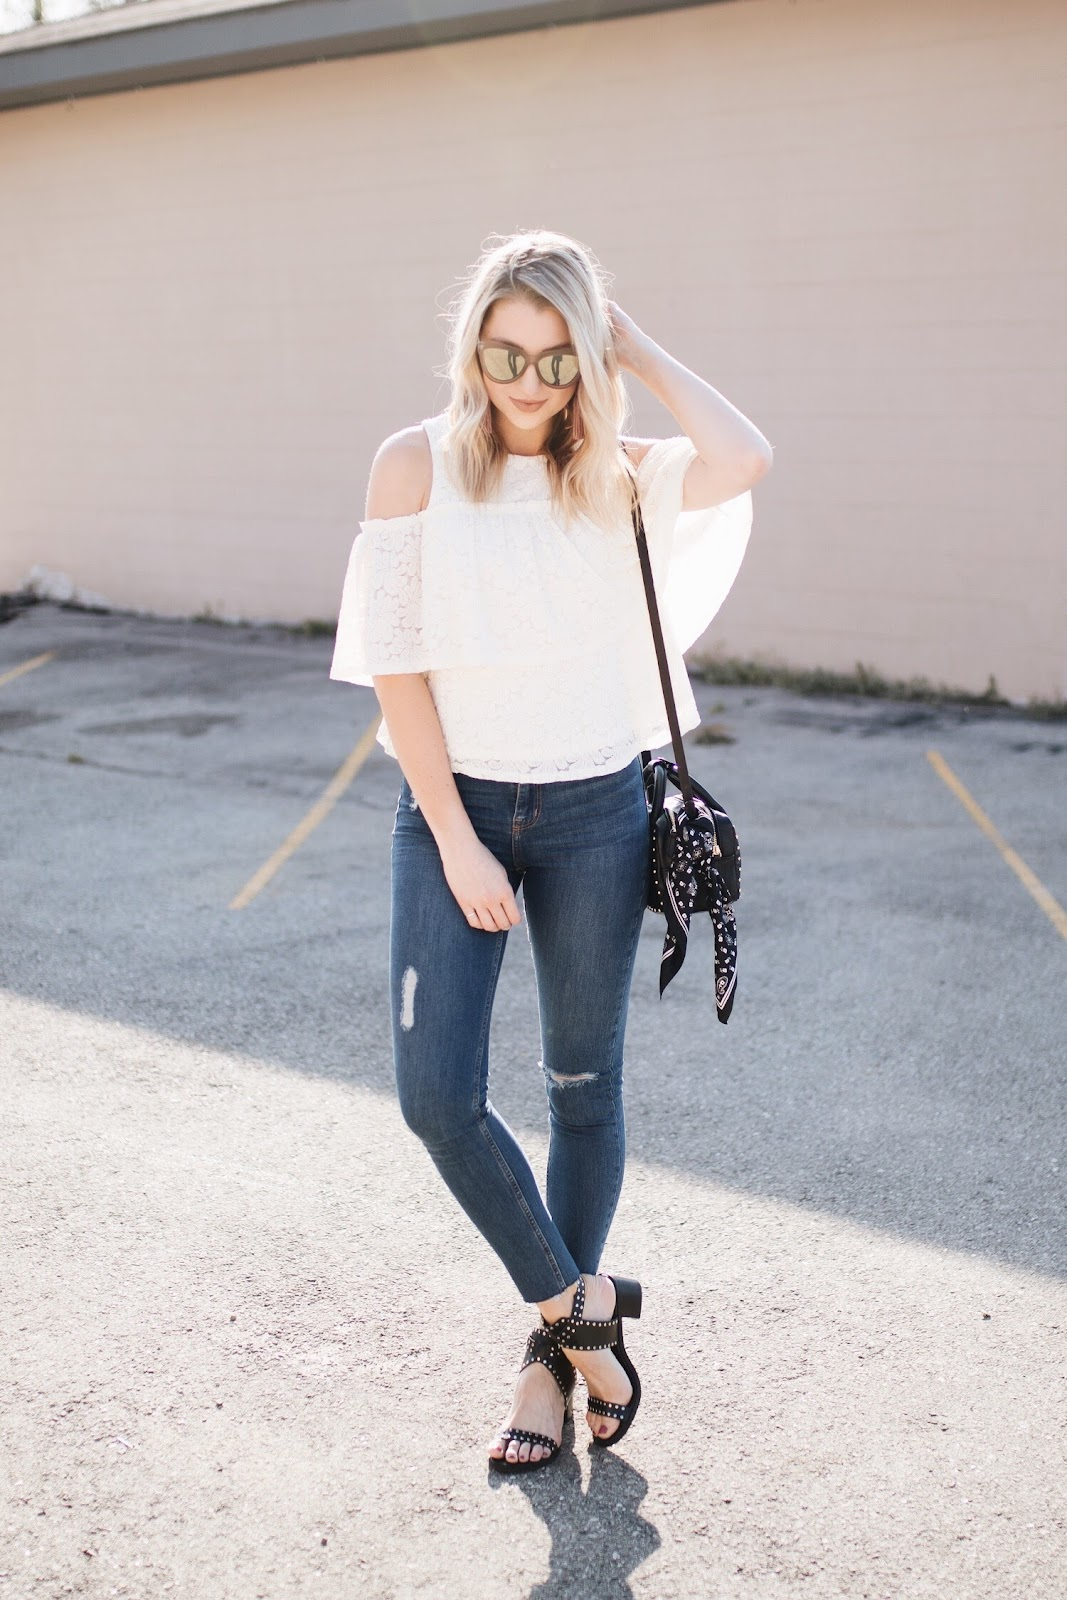 spring outfit idea: cold shoulder top, skinny jeans, studded sandals